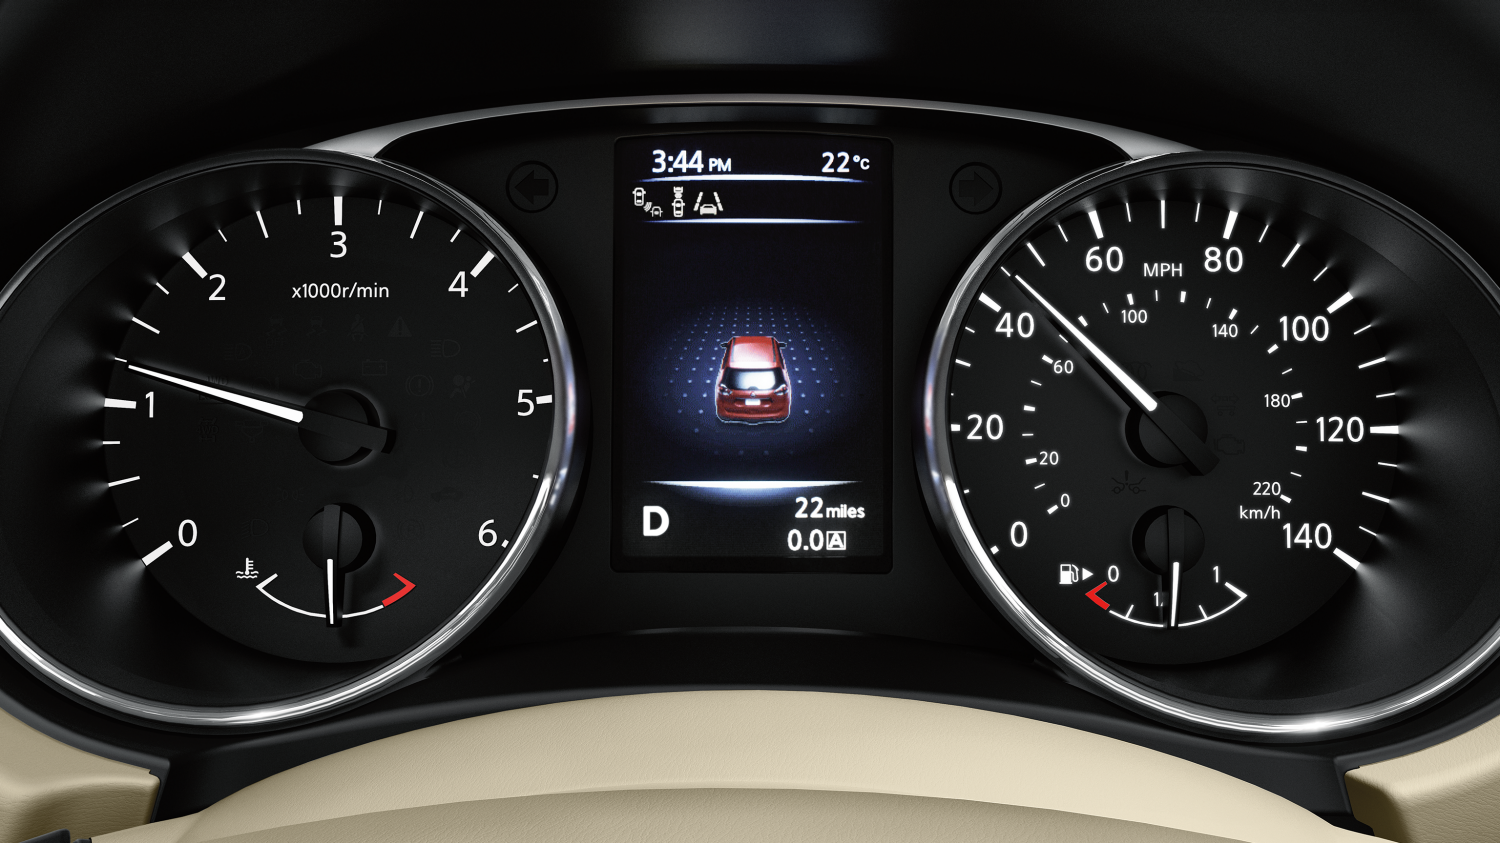 Nissan X-Trail | Drive-assist display